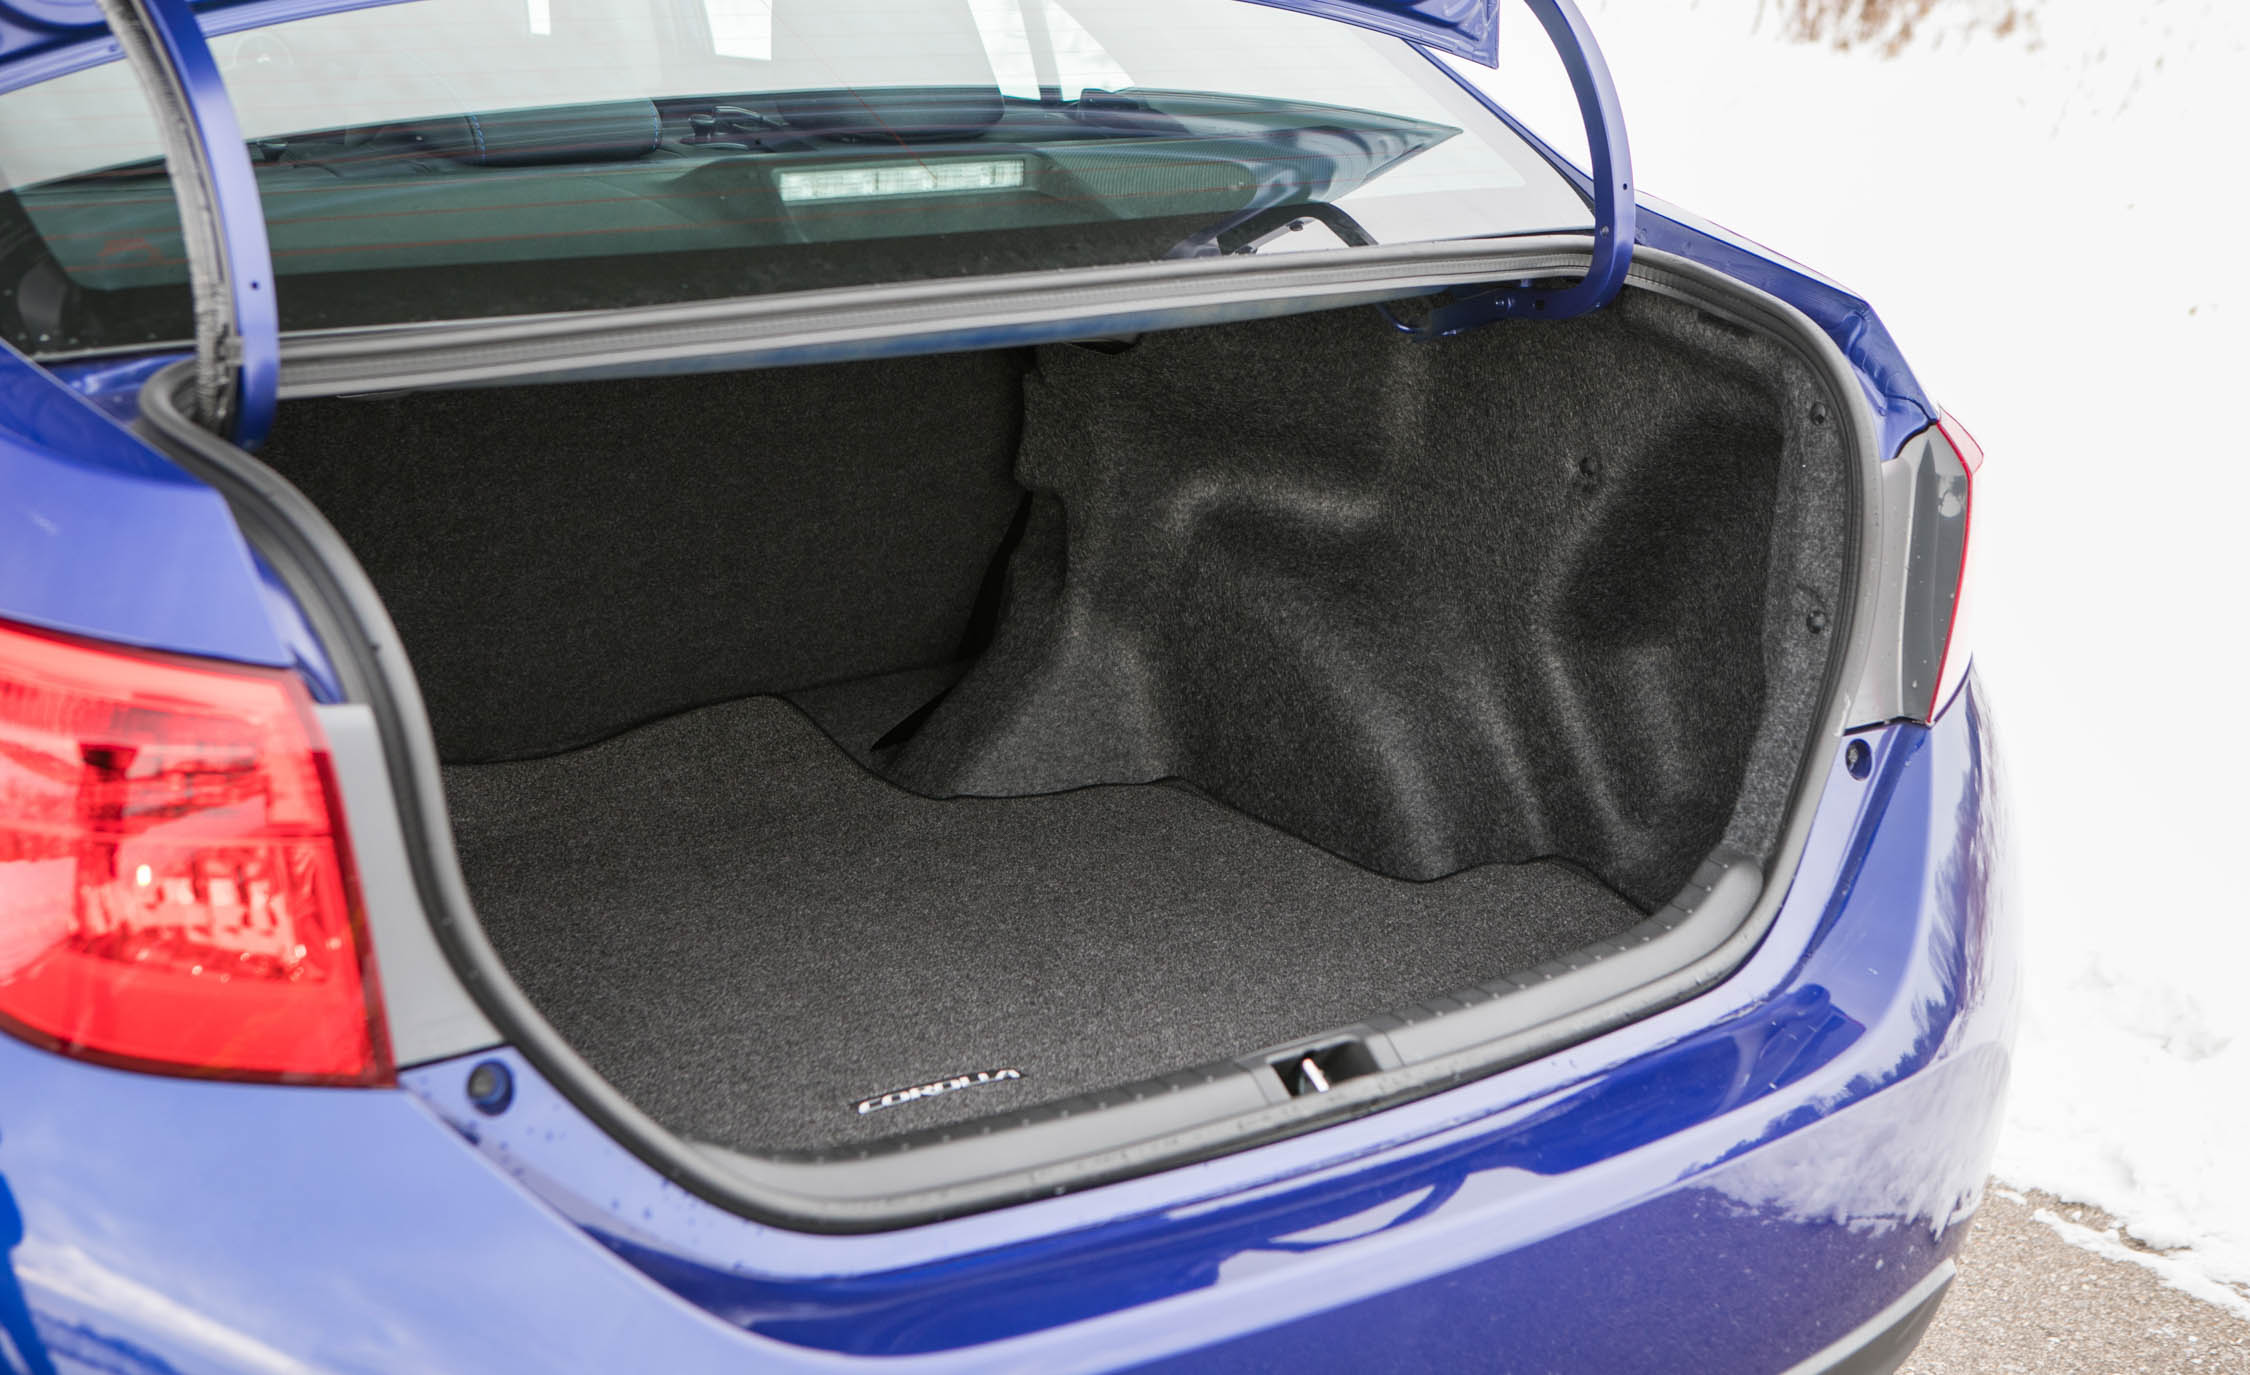 2017 Toyota Corolla XSE Interior View Cargo Trunk (Photo 58 of 75)